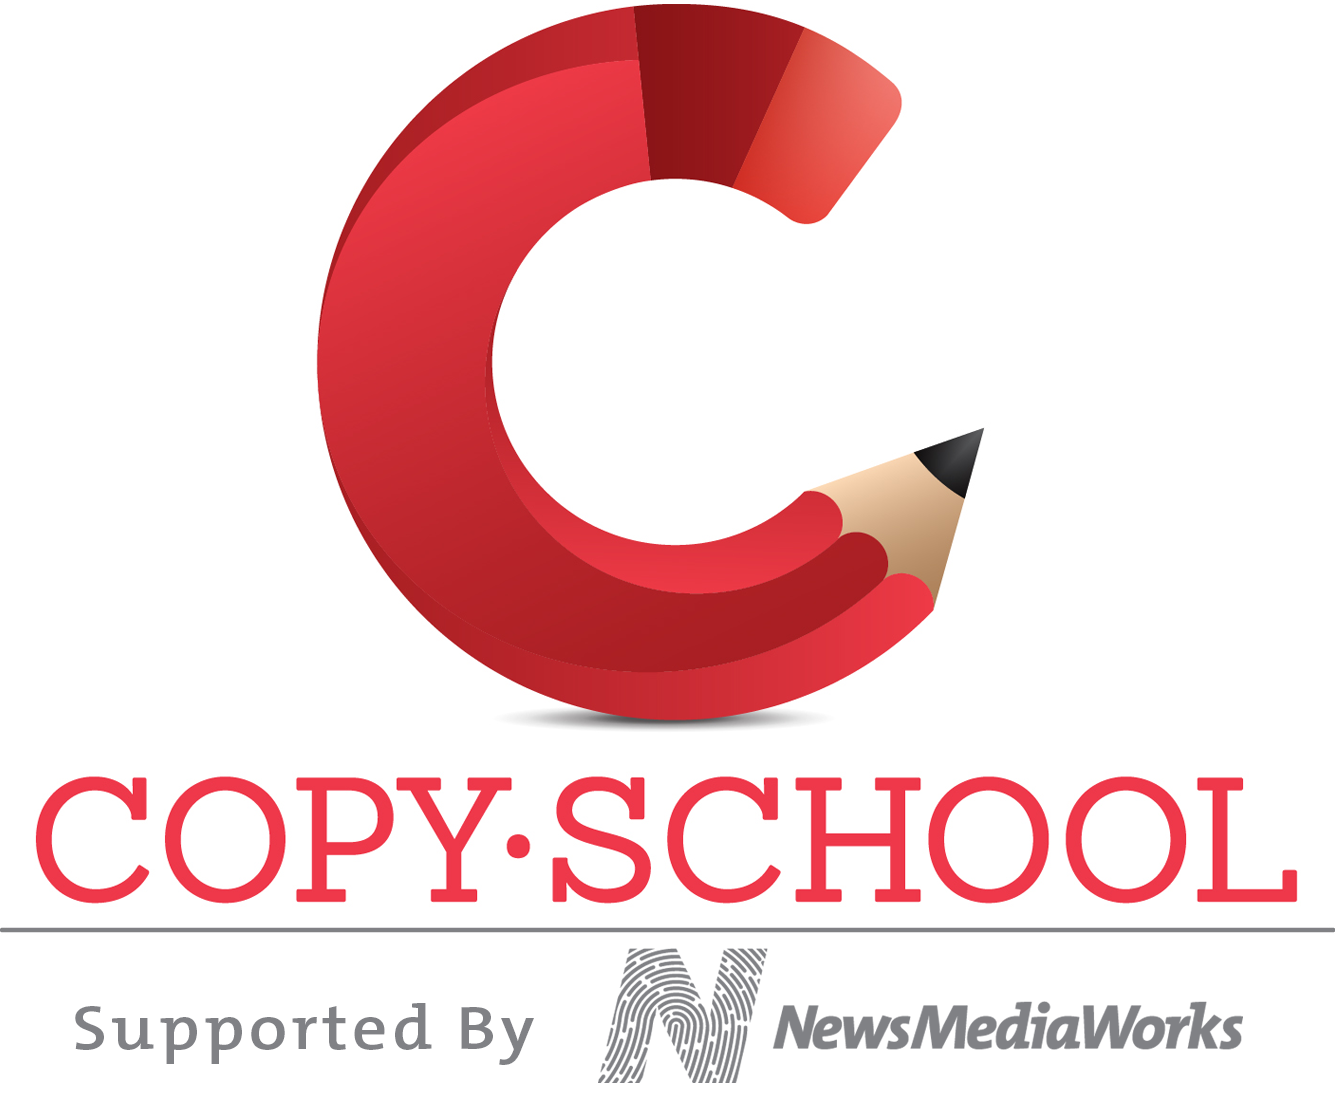 Copy_School_NMW_Stacked_RGB